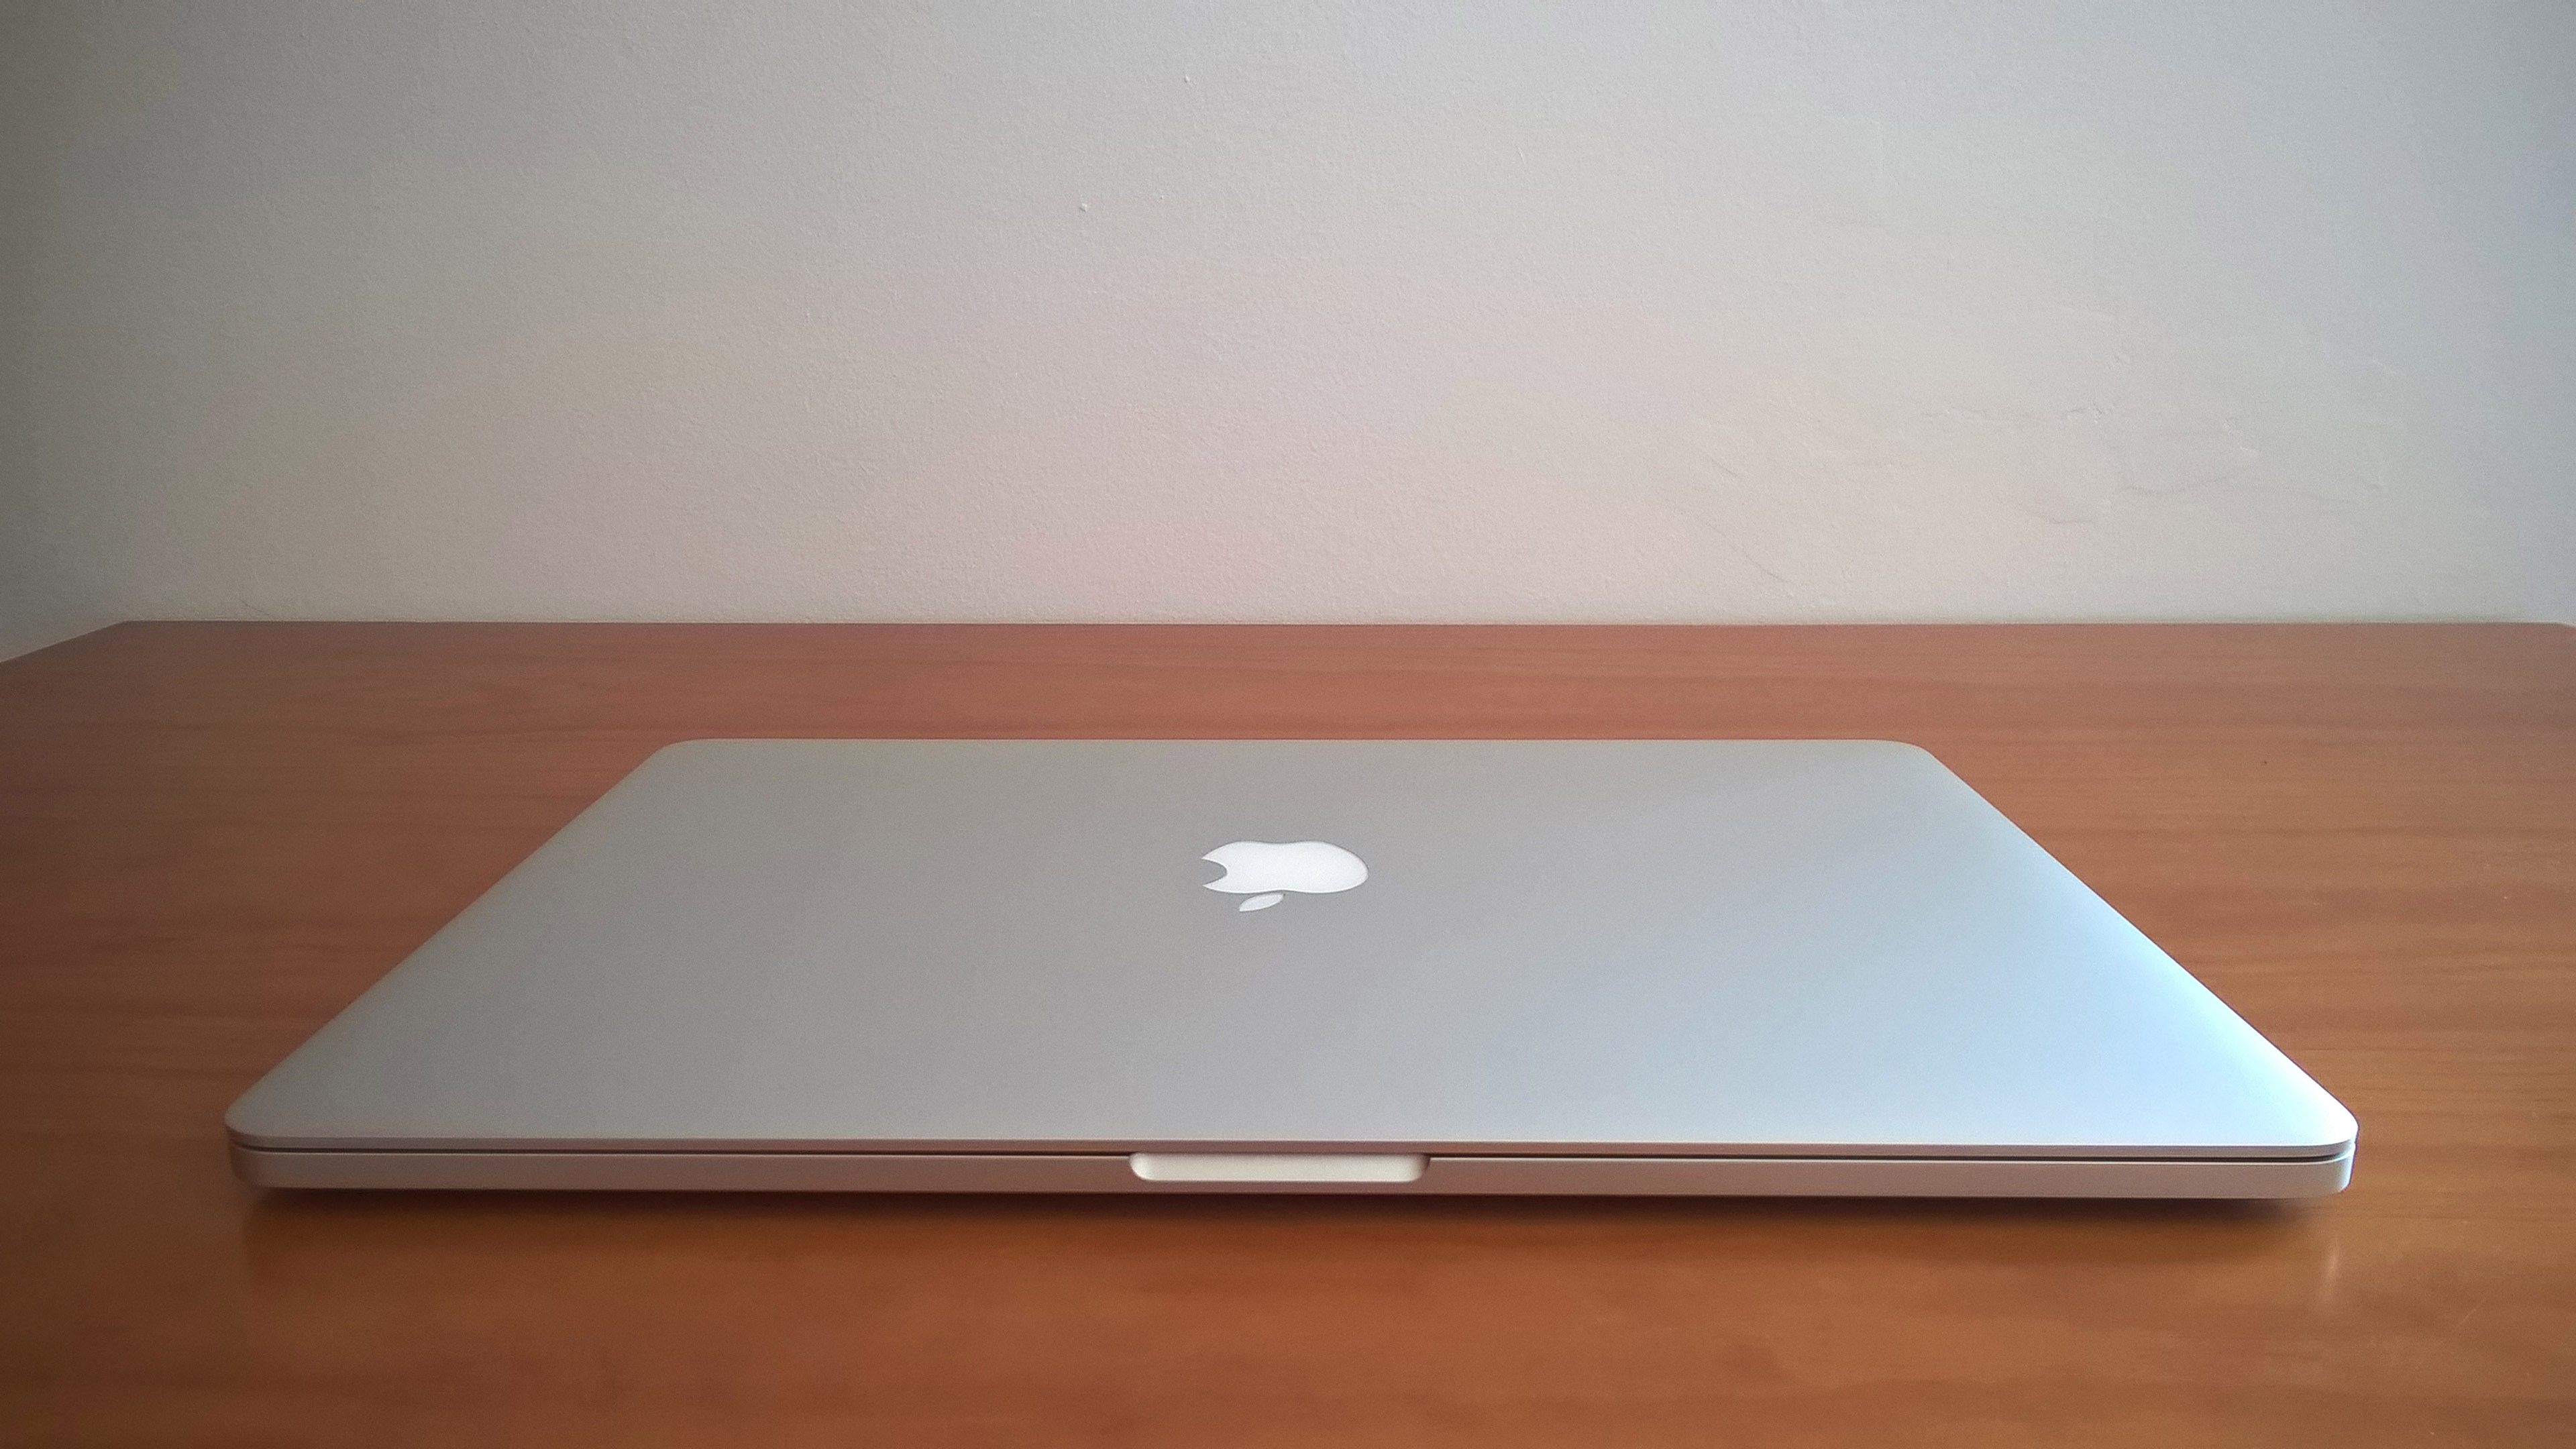 MacBook Pro 15 Retina, I7 quad-core, 16gb RAM, 512gb SSD, 2gb GDDR5